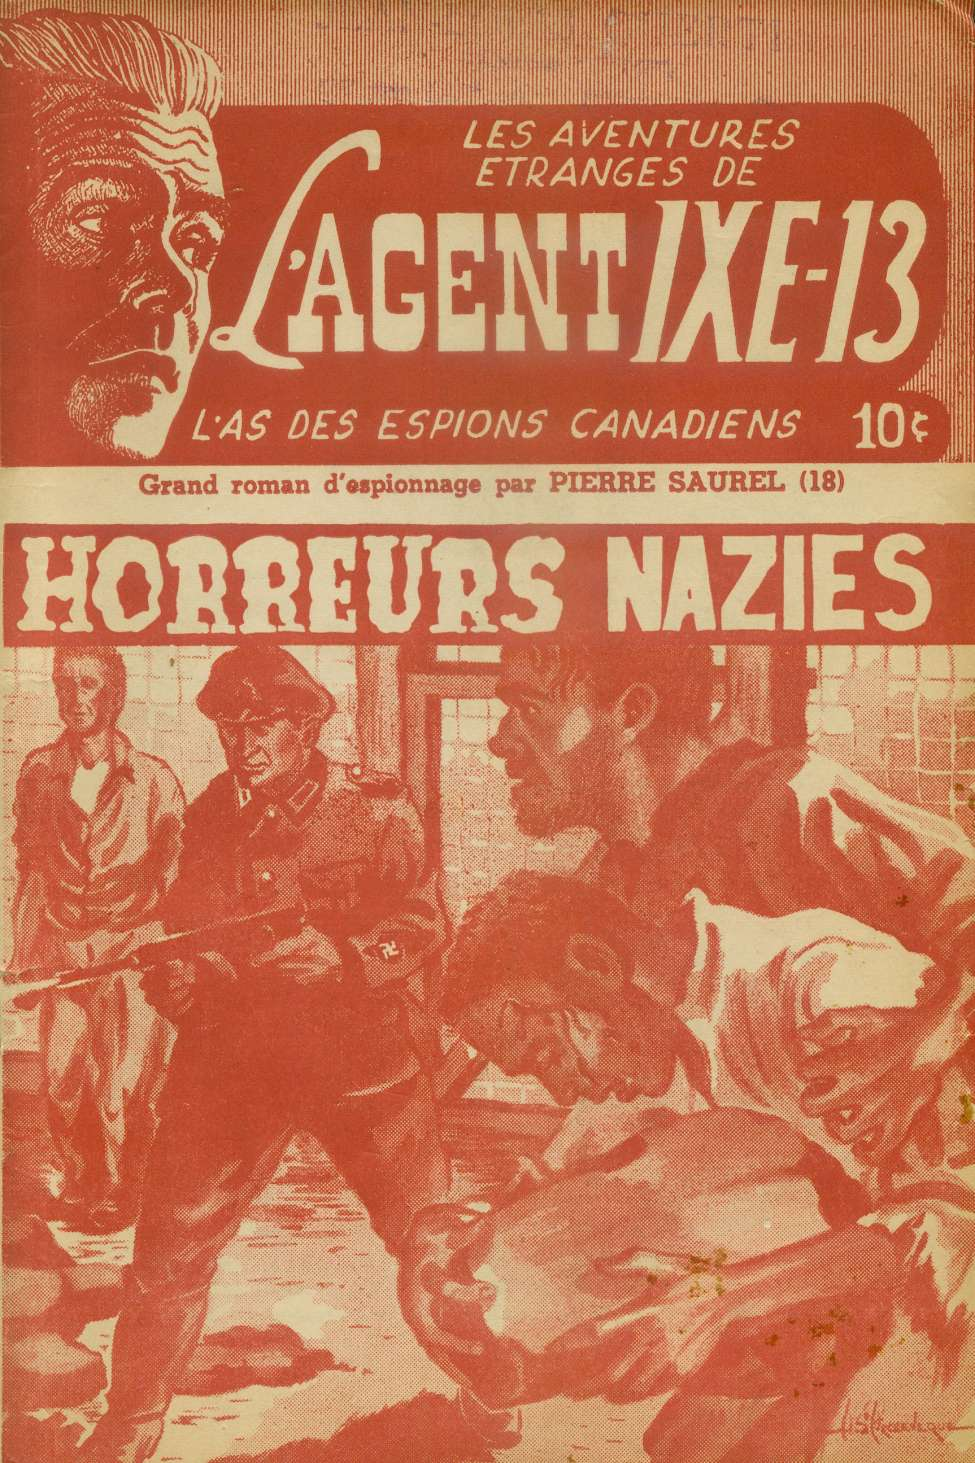 Comic Book Cover For L'Agent IXE-13 v2 018 - Horreurs nazies